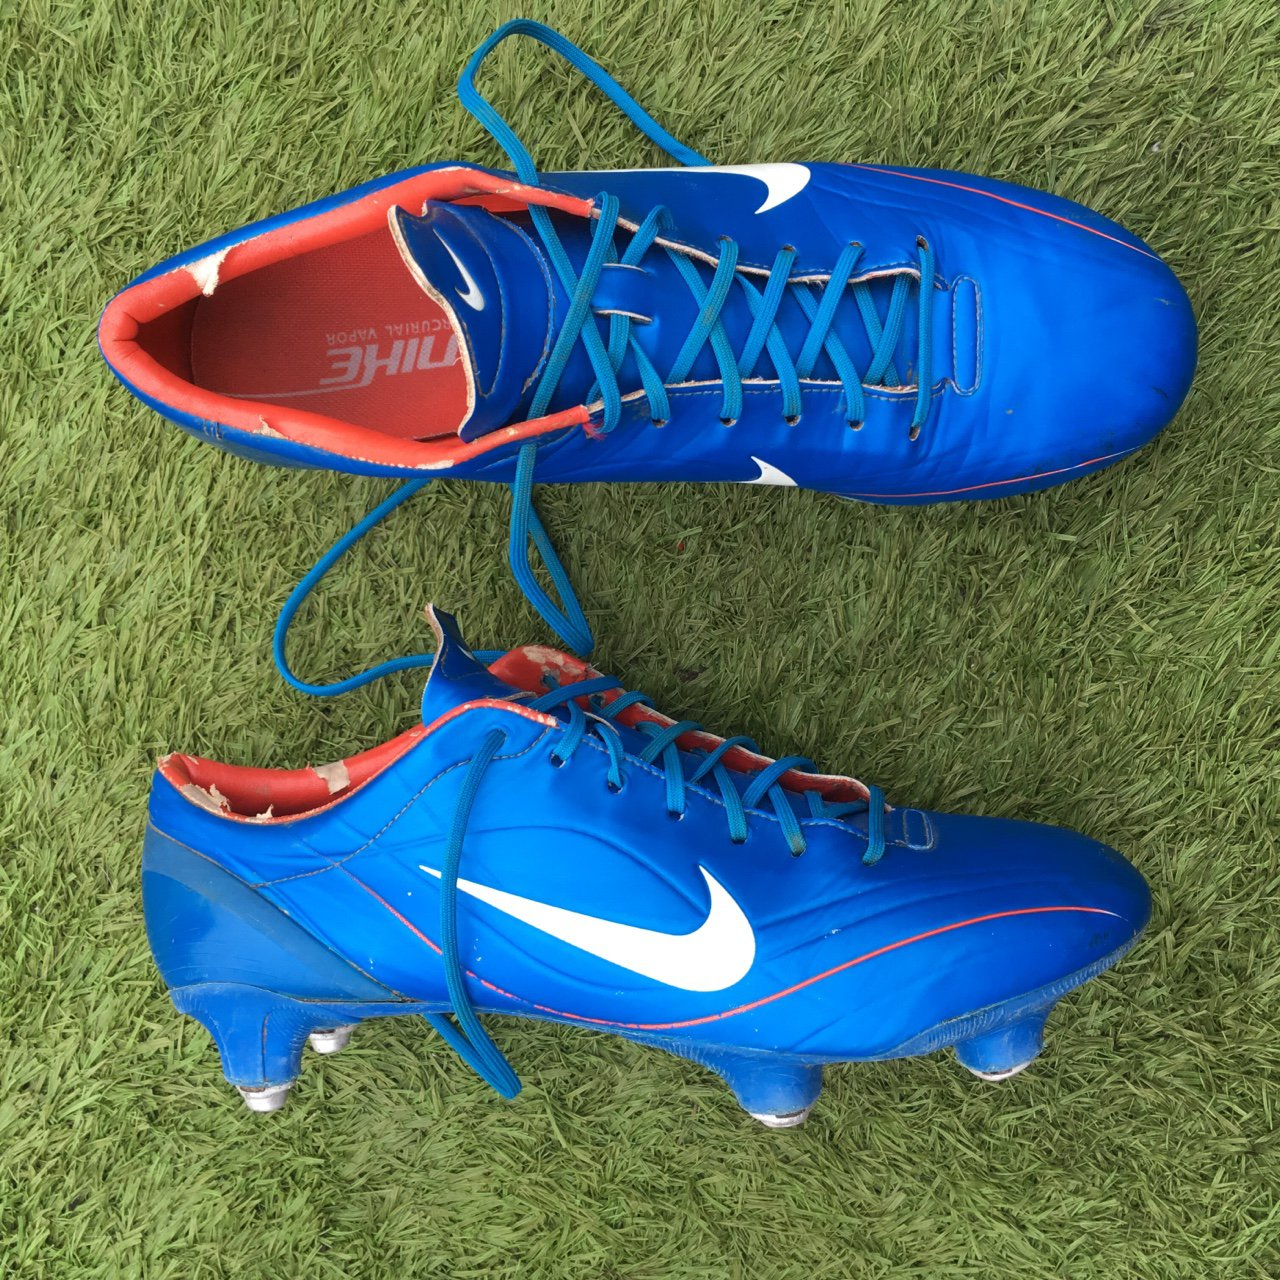 70b2e9836 2 years ago. sutton cum granby united kingdom. nike mercurial vapor